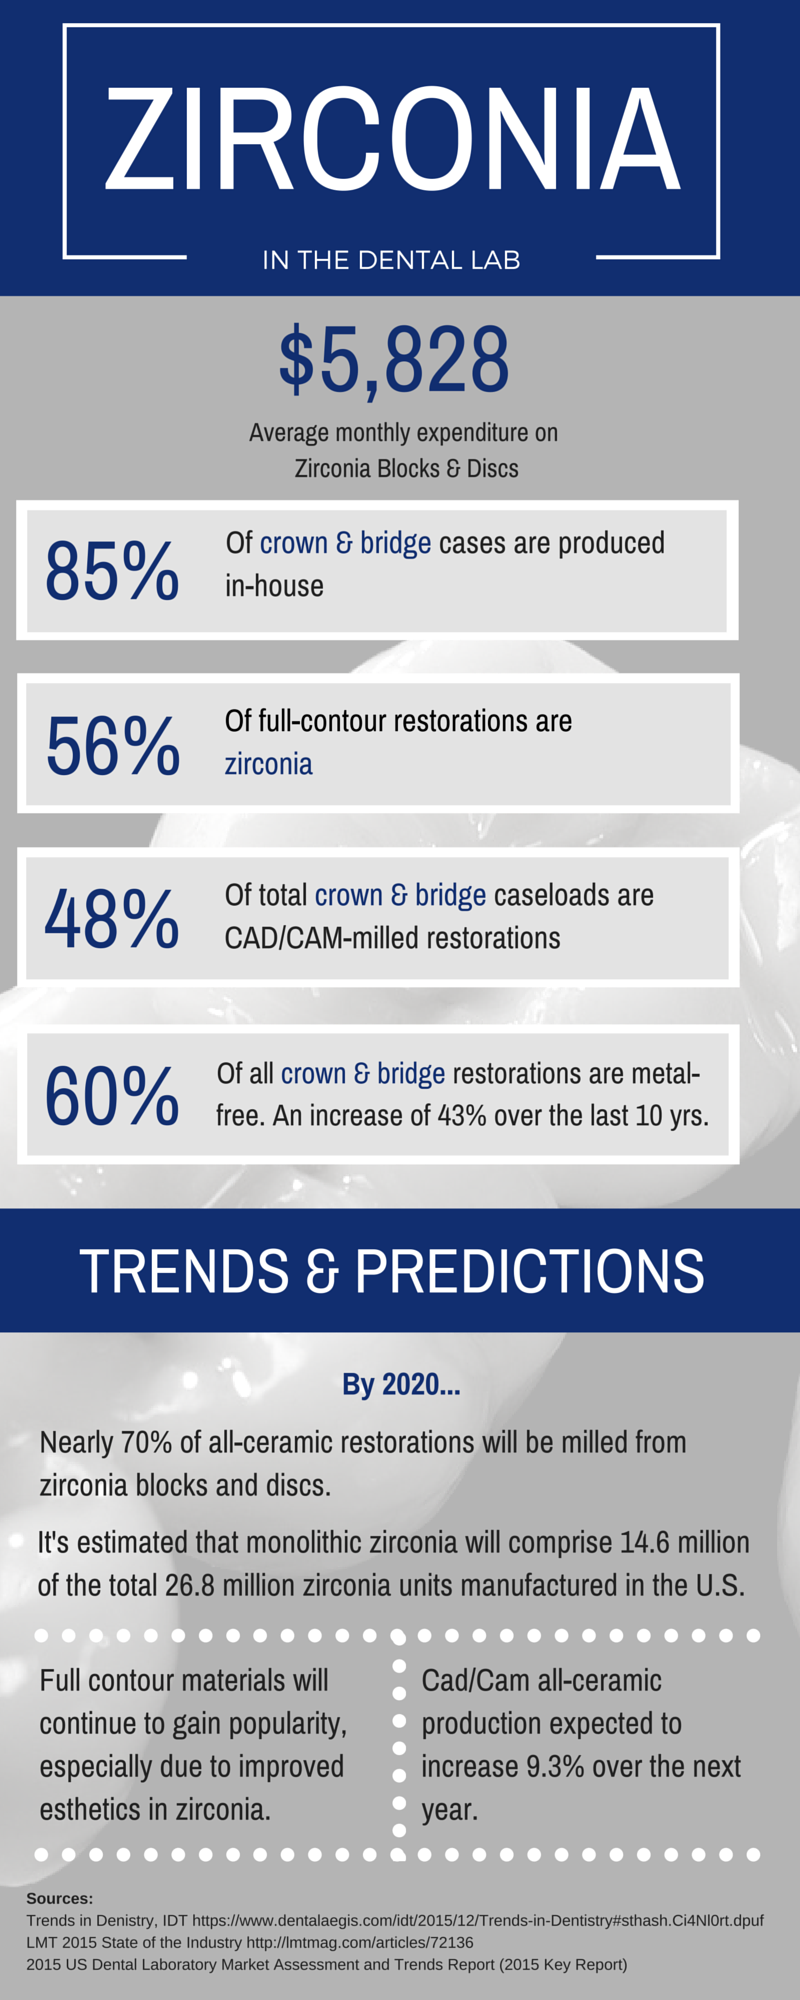 Zirconia_Insights_Infographic.png